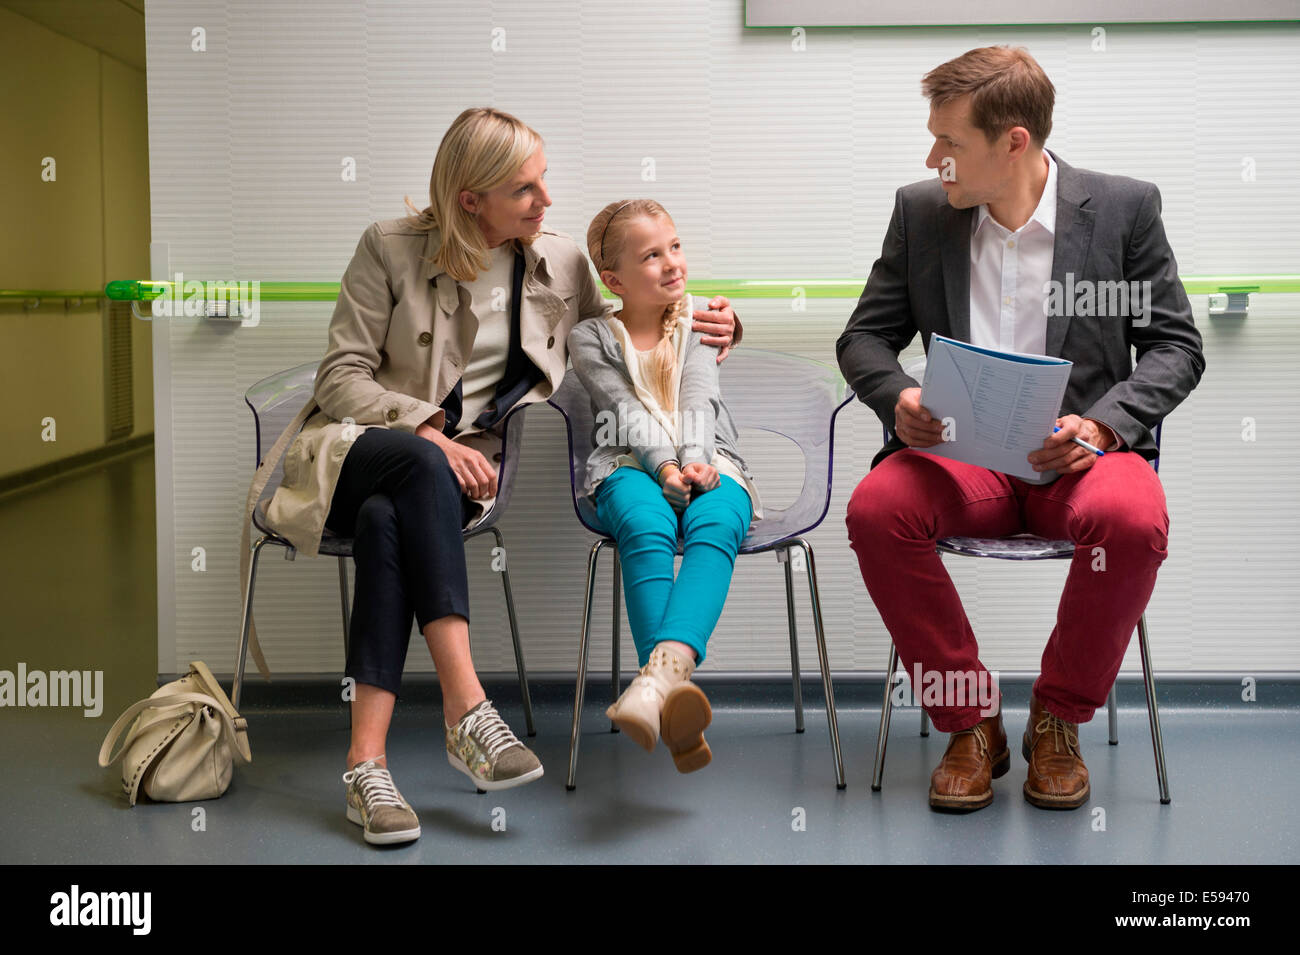 Couple with their daughter sitting in the waiting area of a hospital - Stock Image